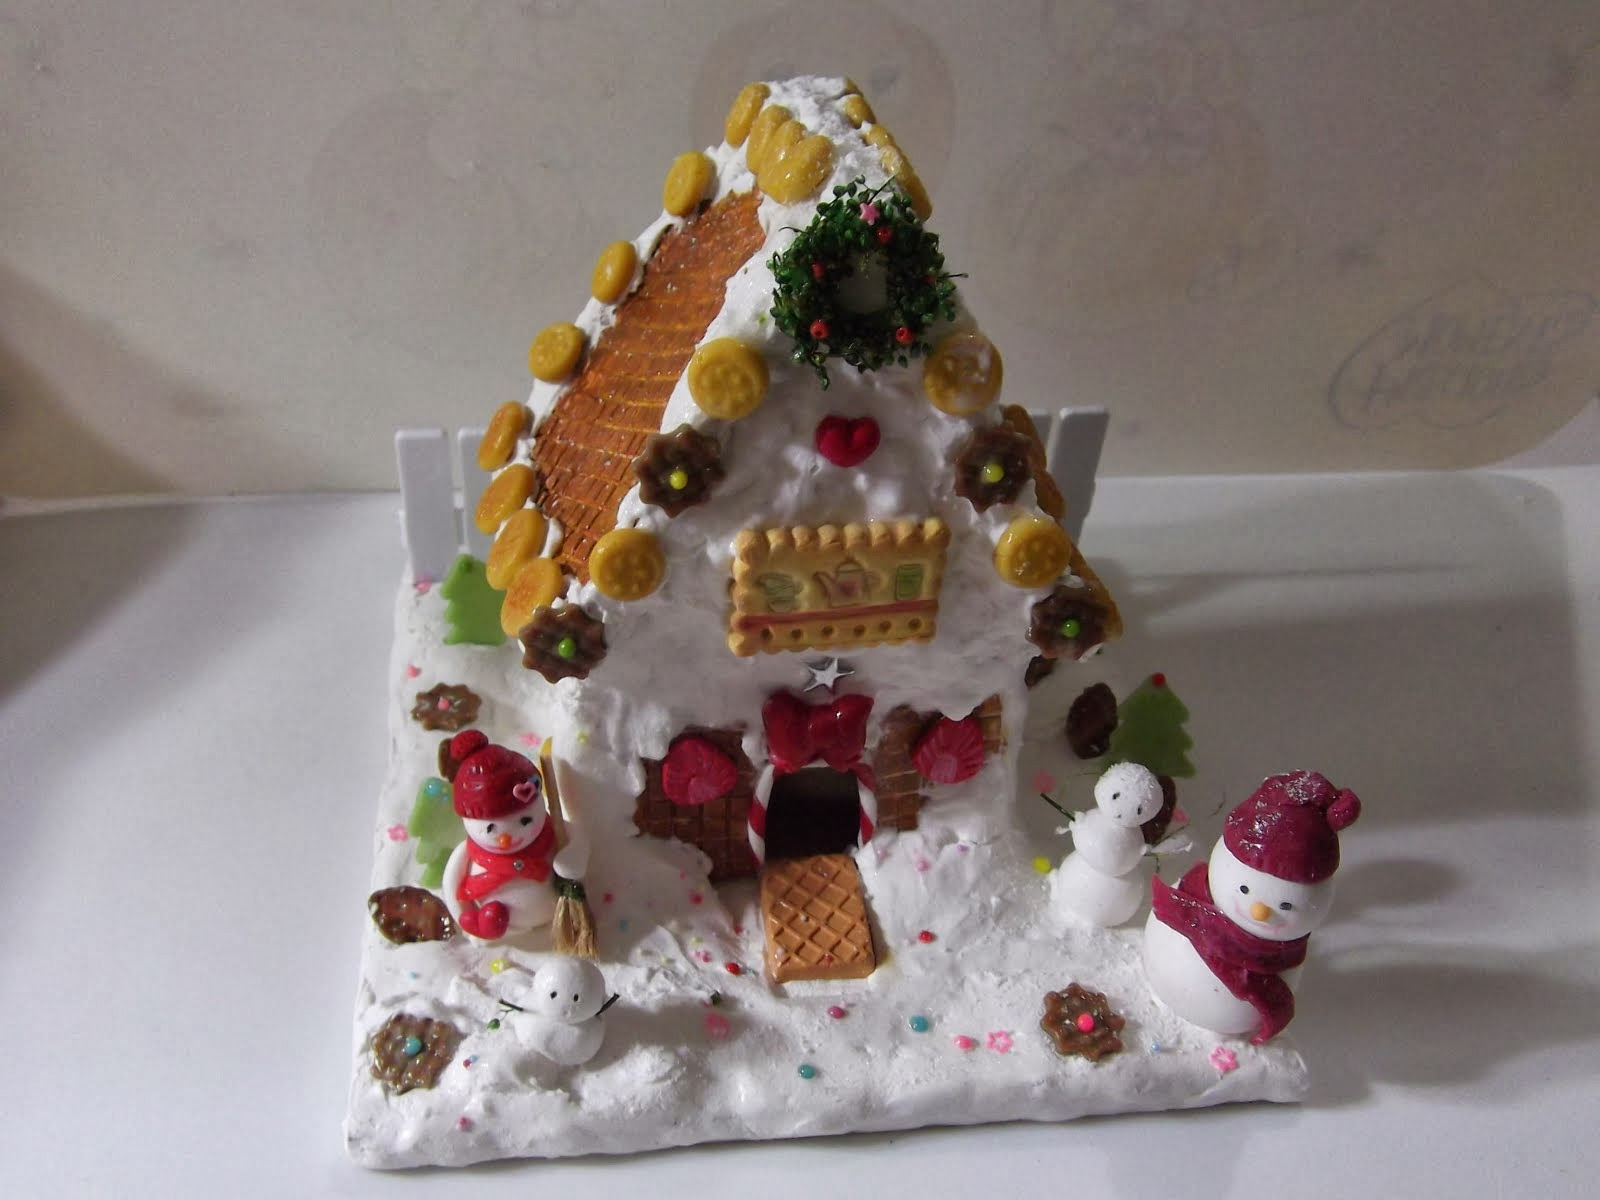 Miniature Ginger Bread House